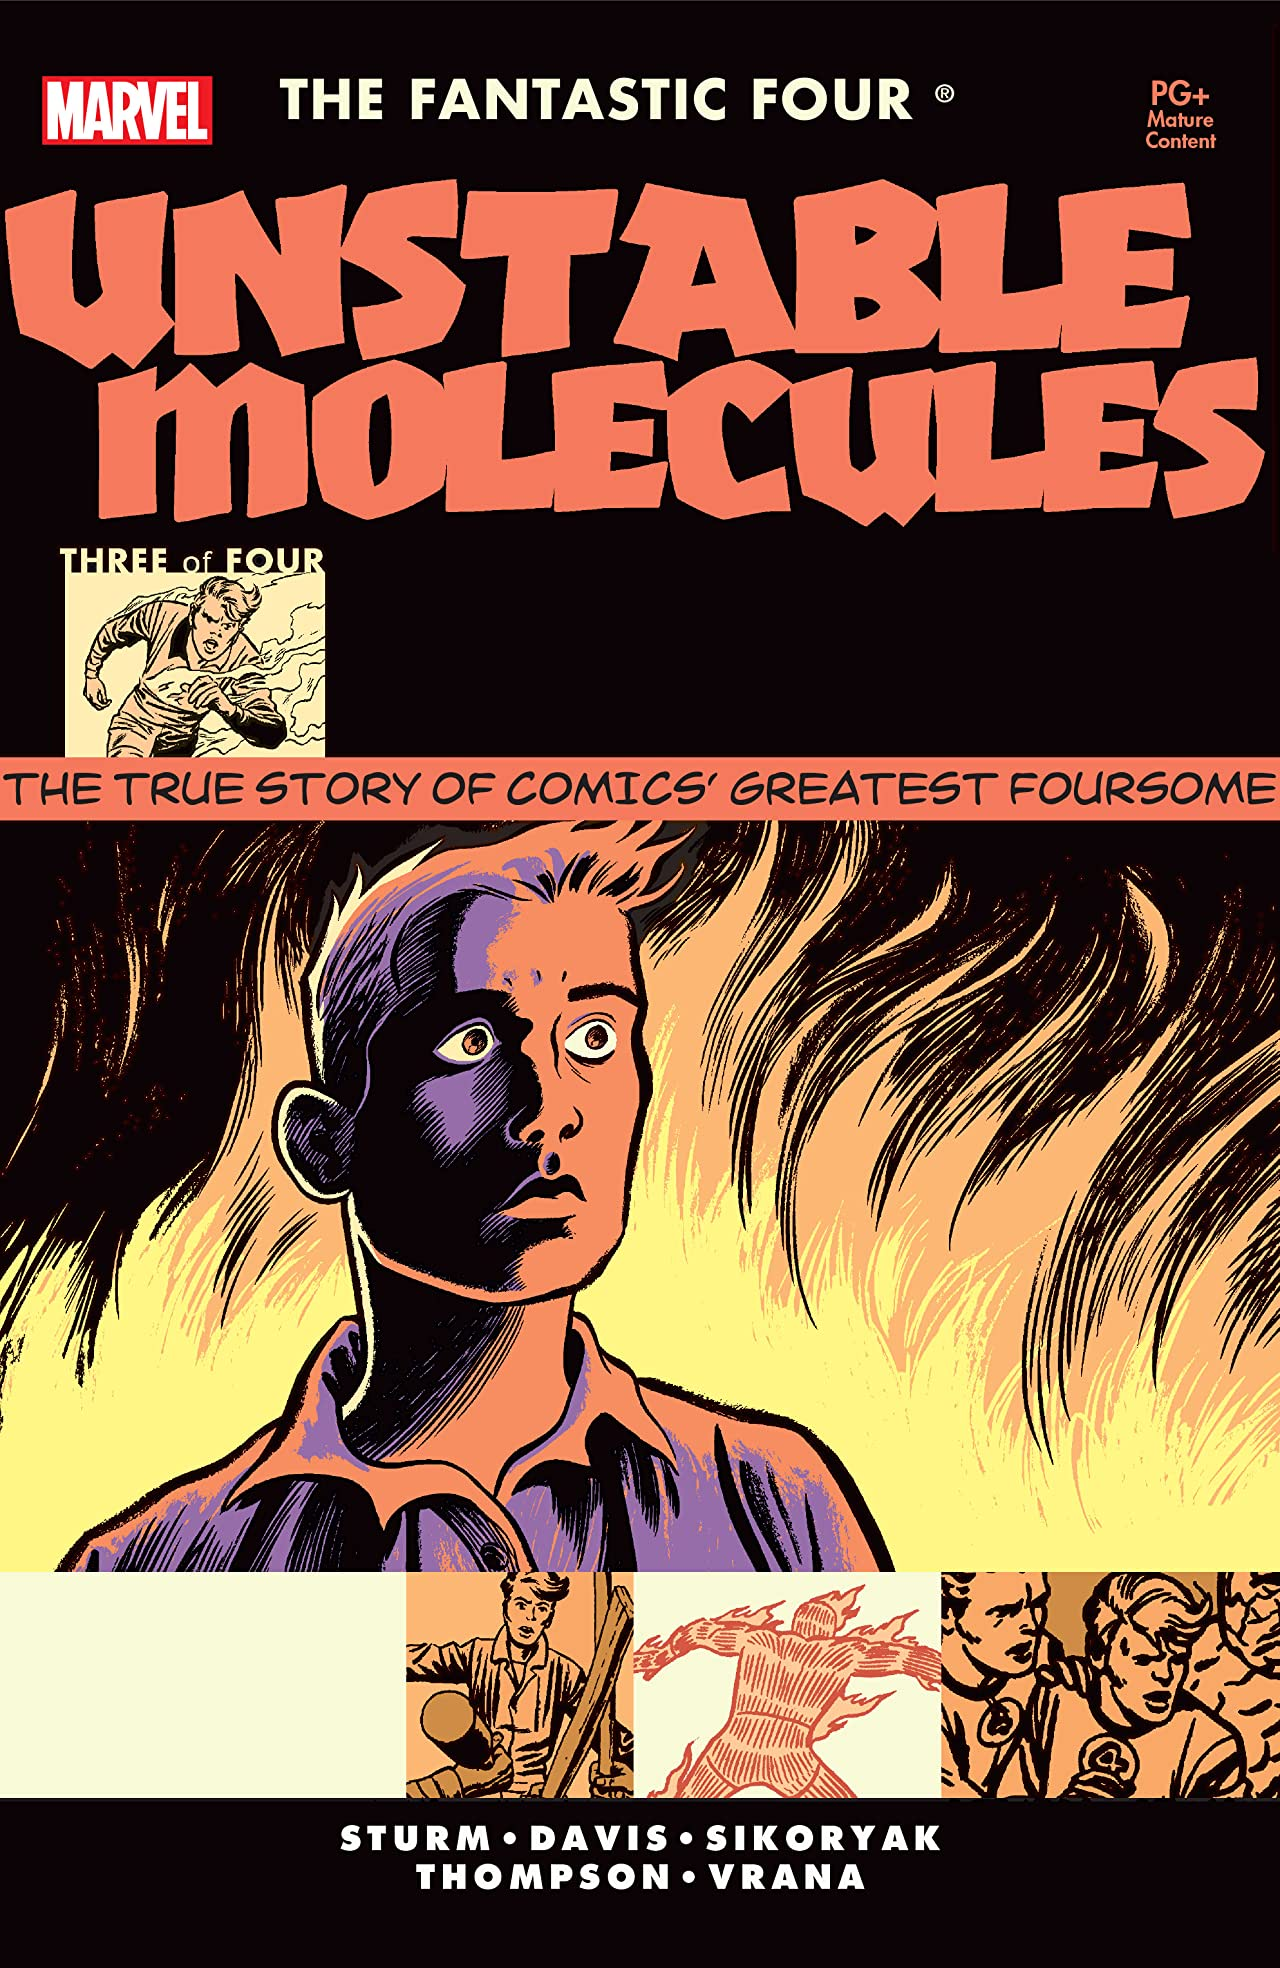 Startling Stories: Fantastic Four - Unstable Molecules (2003) #3 (of 4)